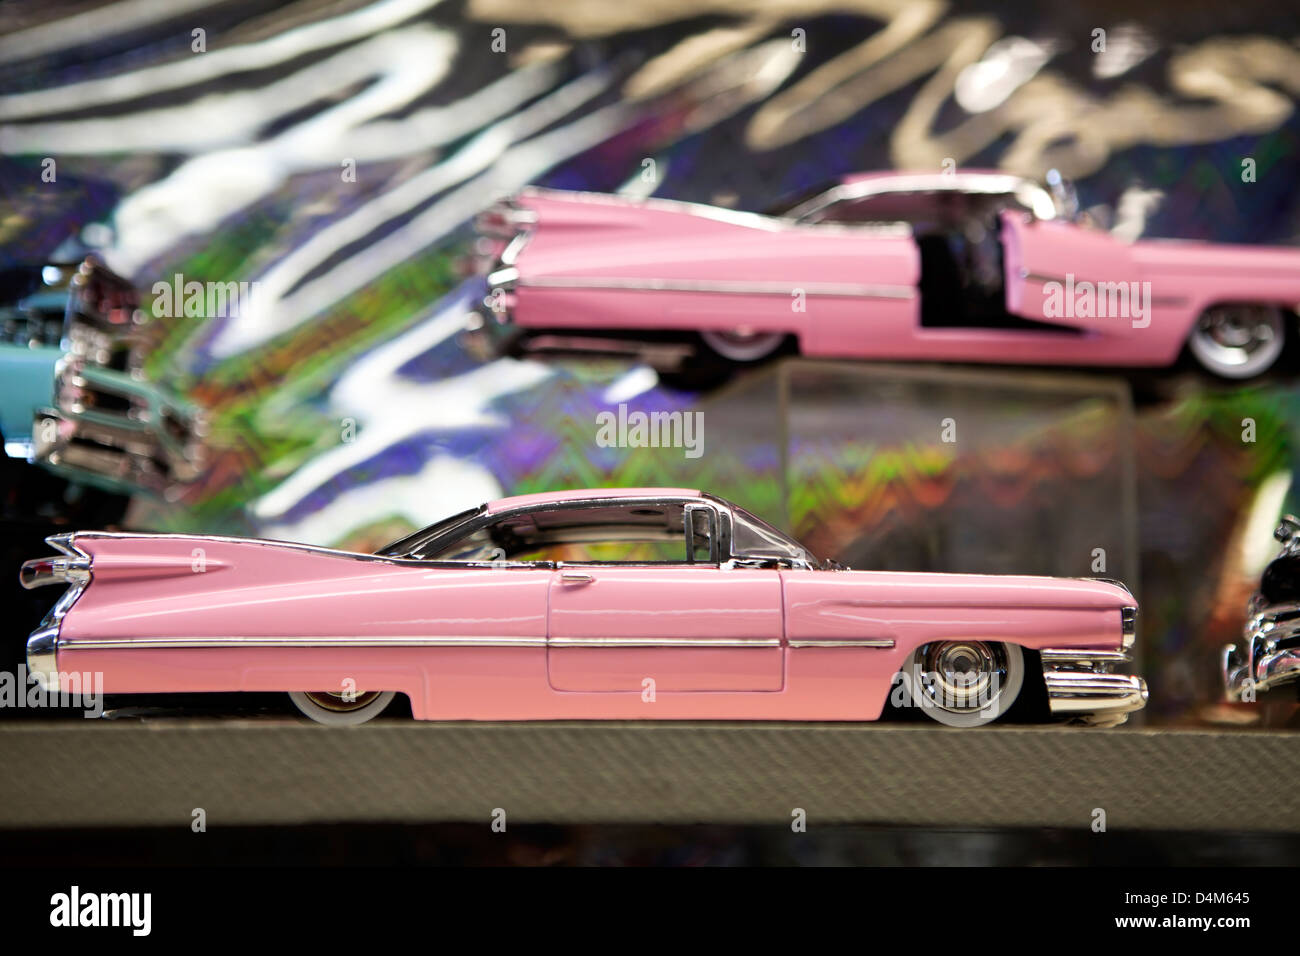 A Pink Cadillac Toy Car On The Shelf Reno Nevada Usa Stock Photo